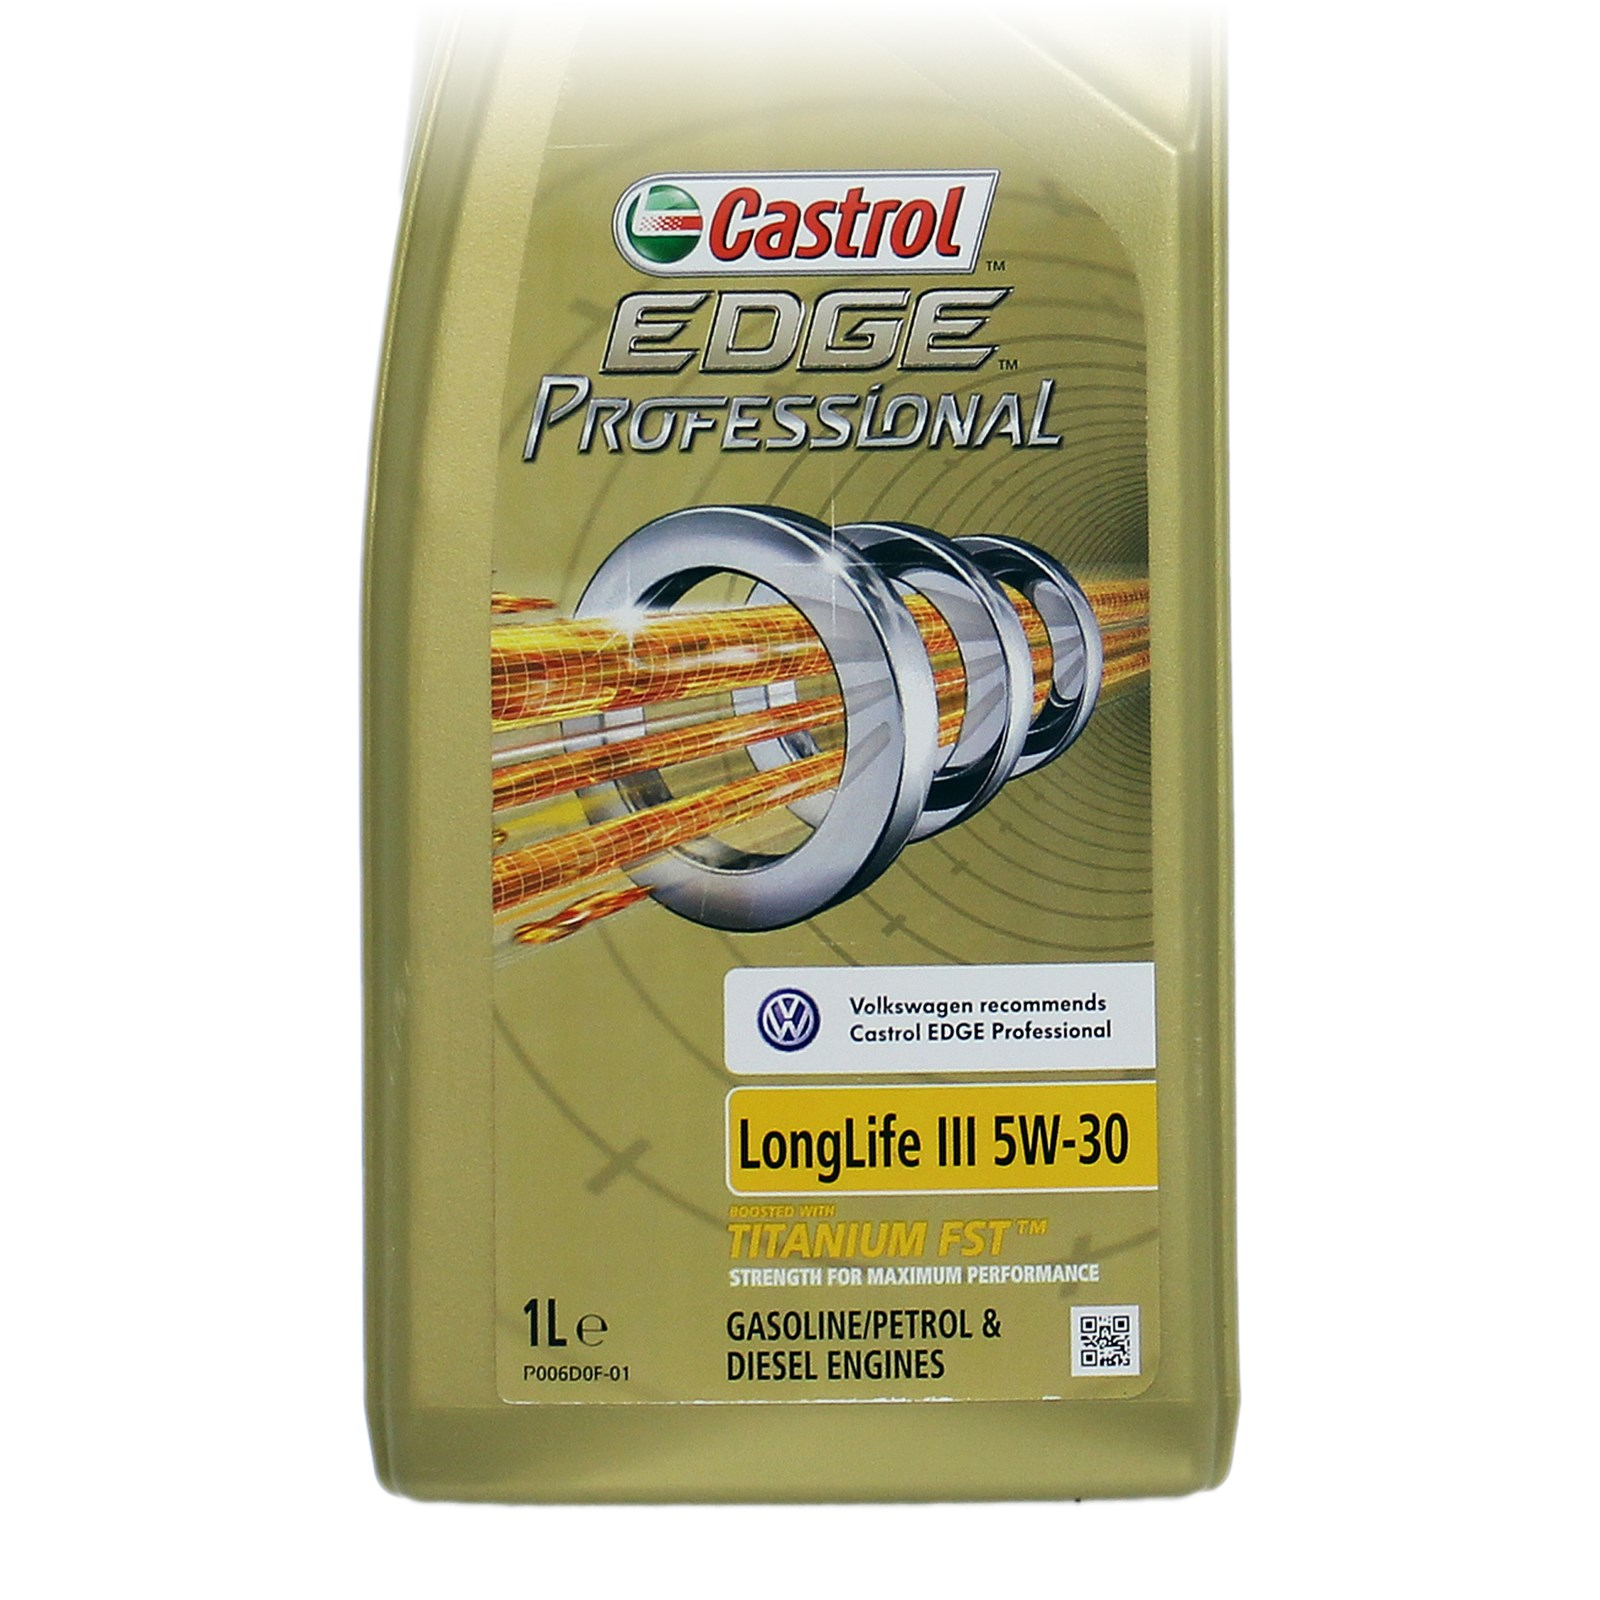 2x 1 l liter castrol edge professional longlife iii 5w 30 vw motor l 31854475 ebay. Black Bedroom Furniture Sets. Home Design Ideas